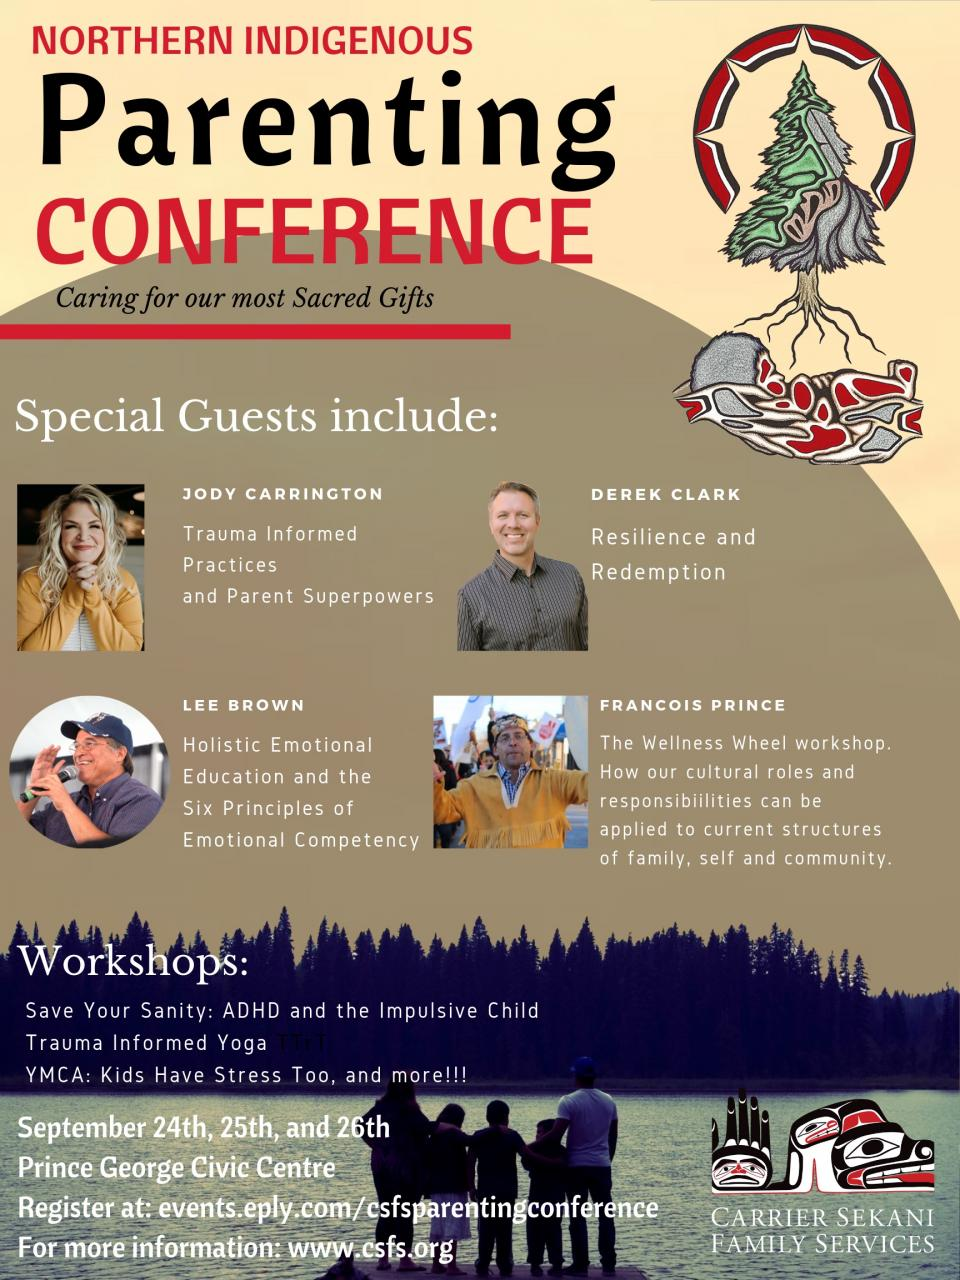 Northern Indigenous Parenting Conference registration now open!!